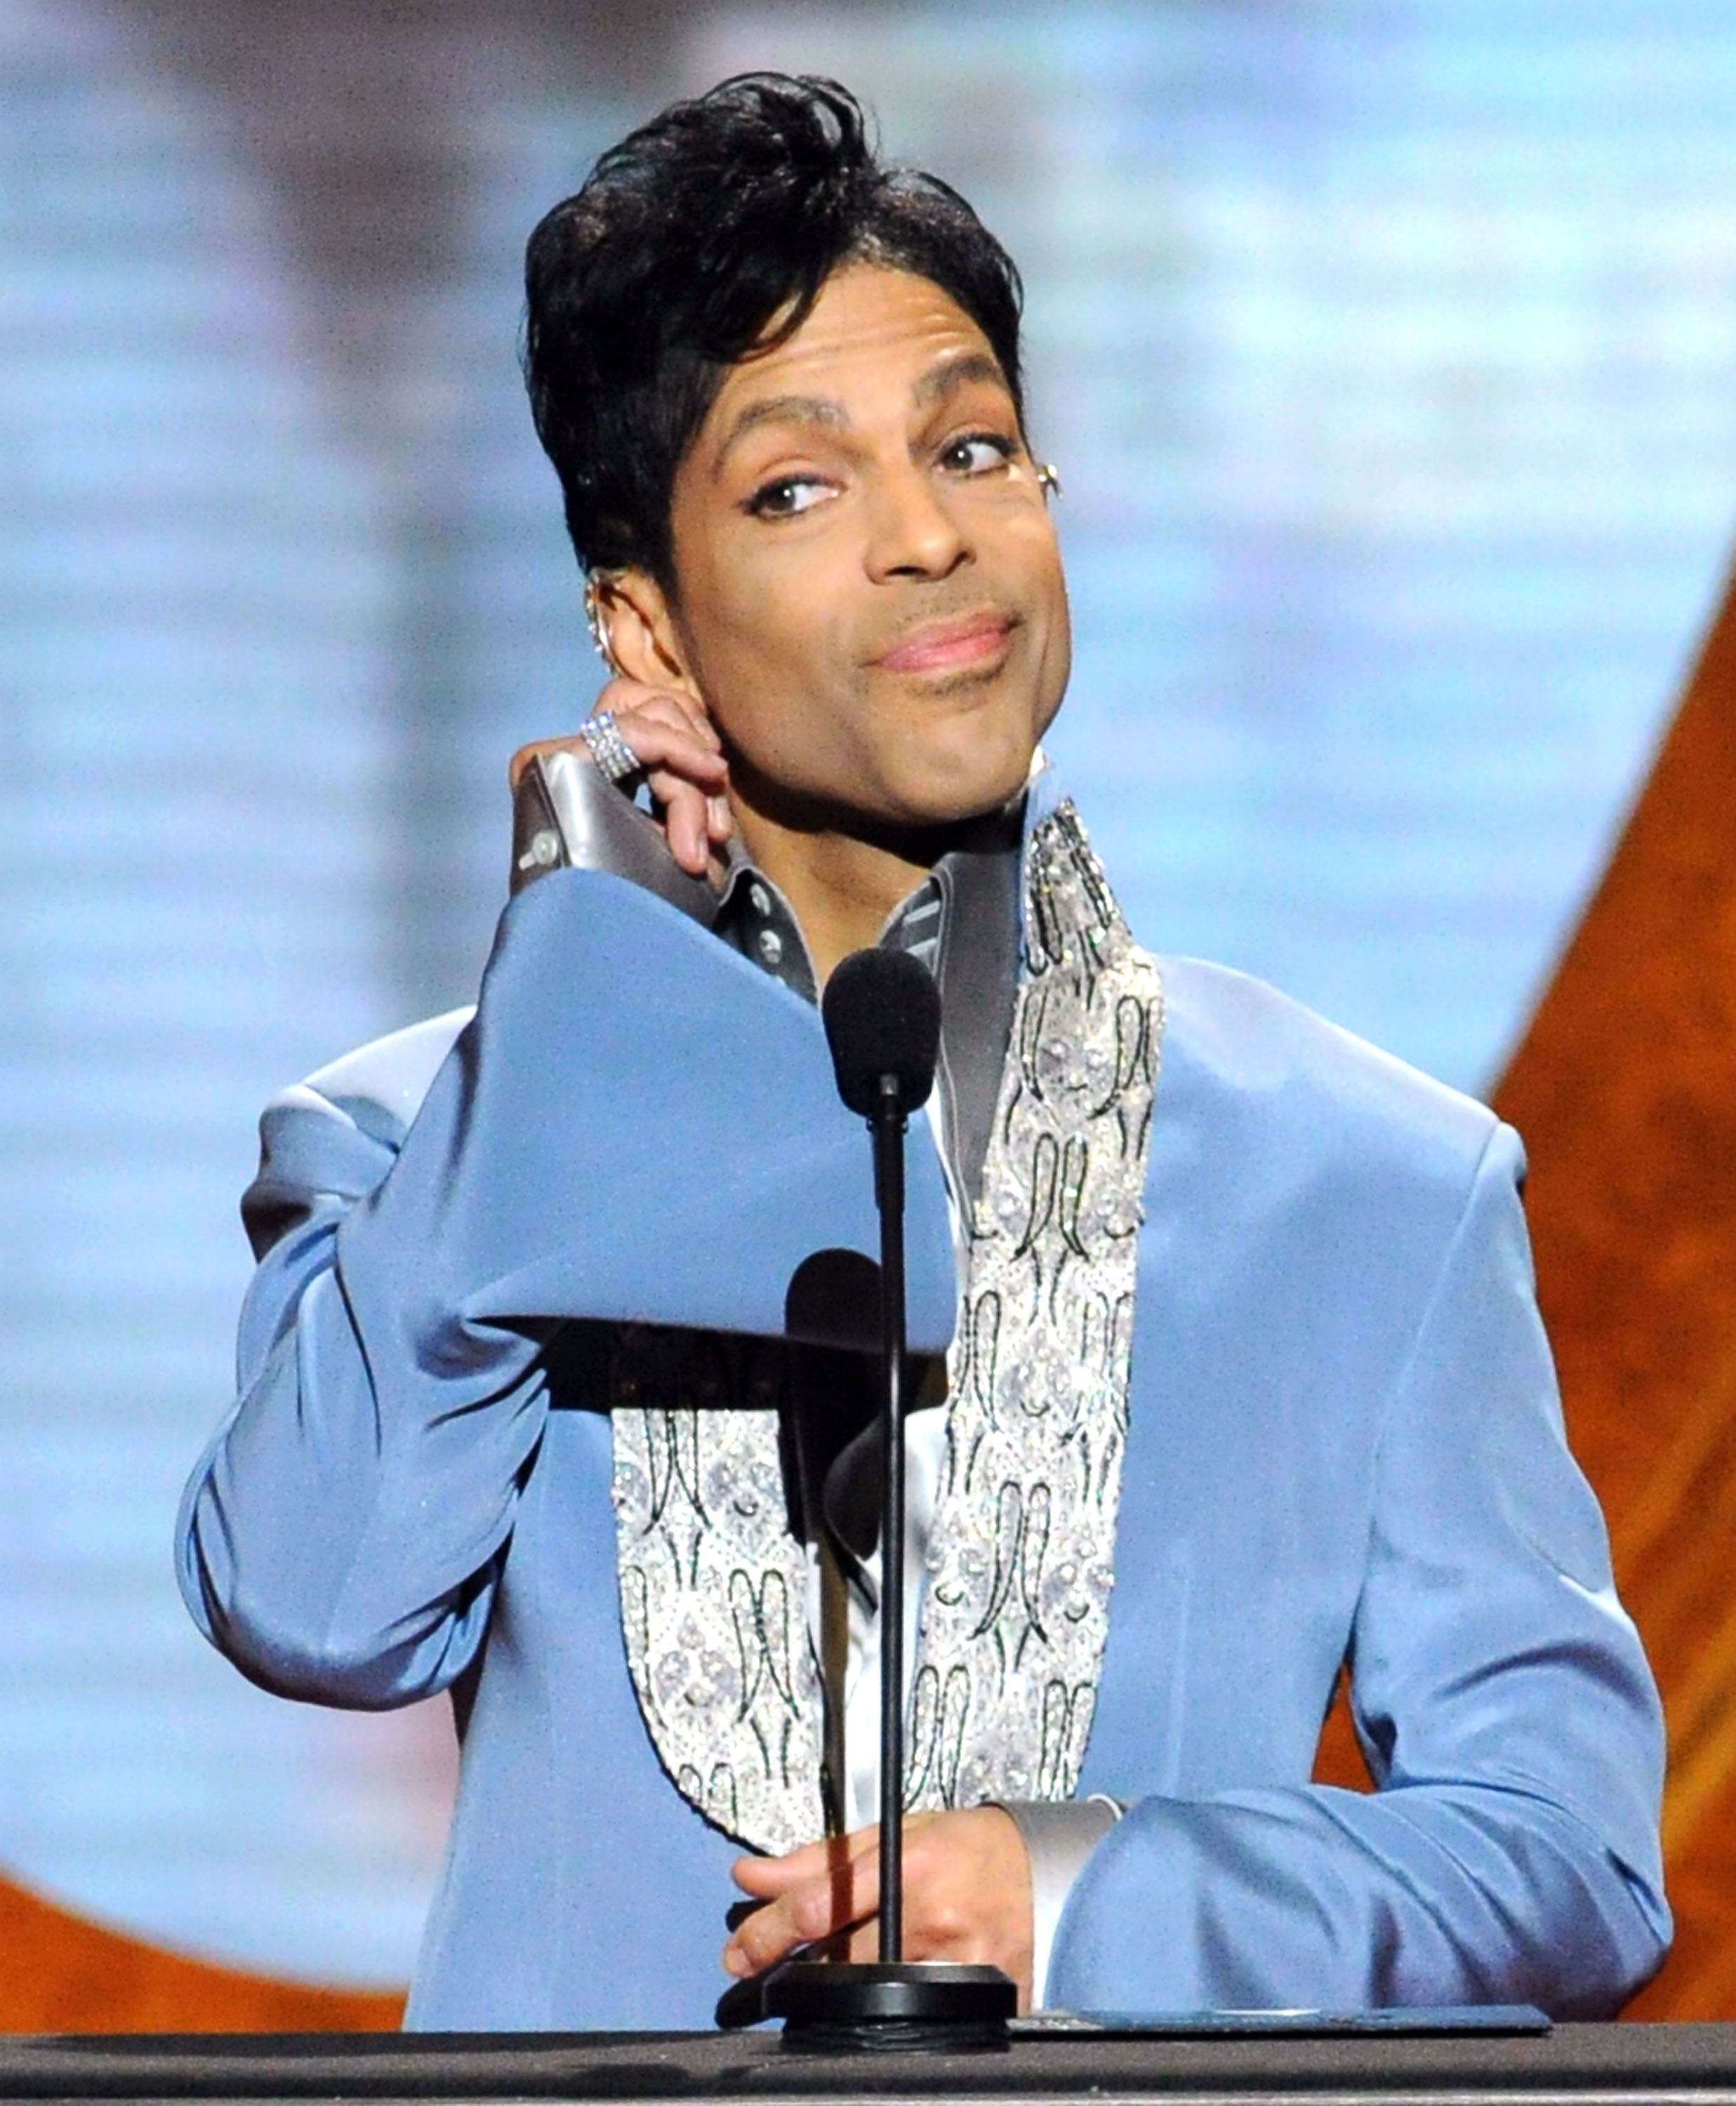 LOS ANGELES, CA - MARCH 04:  Presenter Prince speaks onstage at the 42nd Annual NAACP Image Awards held at The Shrine Auditorium on March 4, 2011 in Los Angeles, California.  (Photo by Jeff Kravitz/FilmMagic)